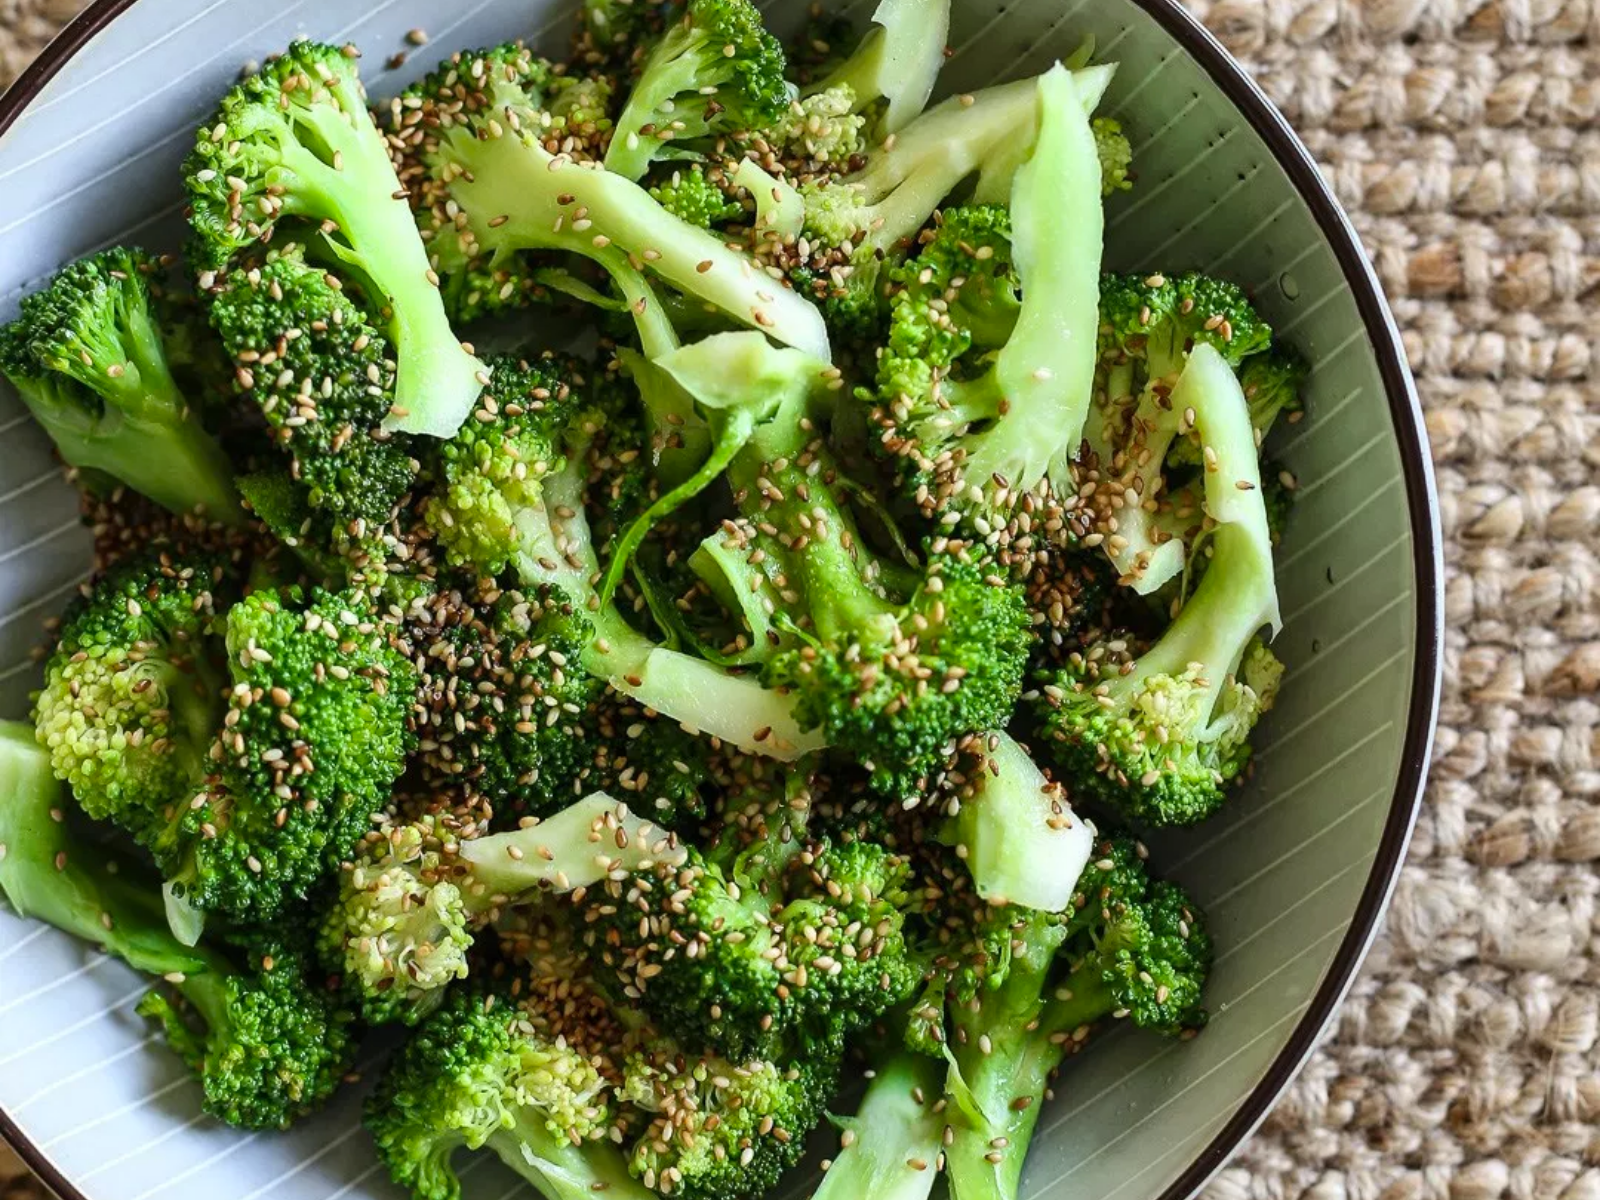 Vegan Steamed broccoli with sesame seeds